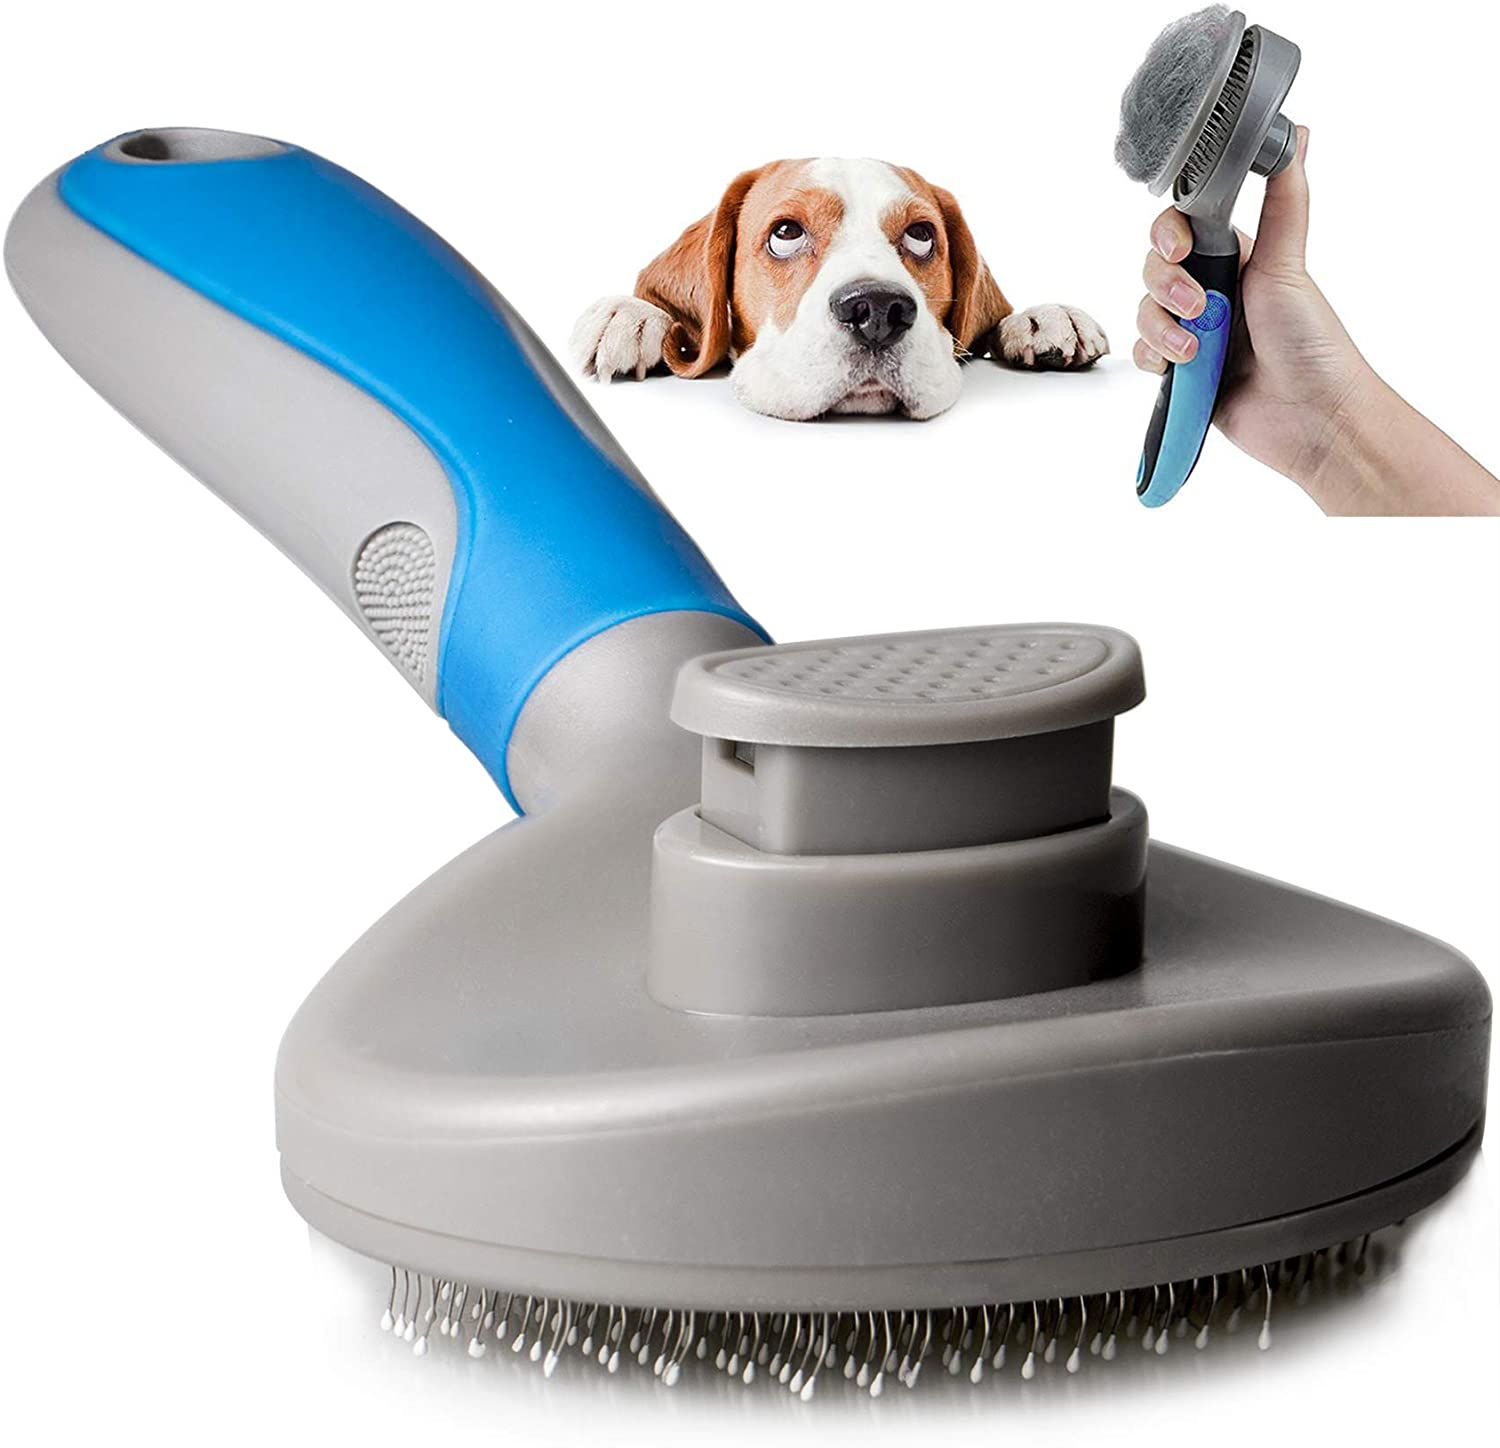 DAMGOO Dog Hair Brush Self Clean Pet Slicker Brush Puppy Shedding Grooming Tool Ergonomic Hair Remover for Dogs Long Hair Cats